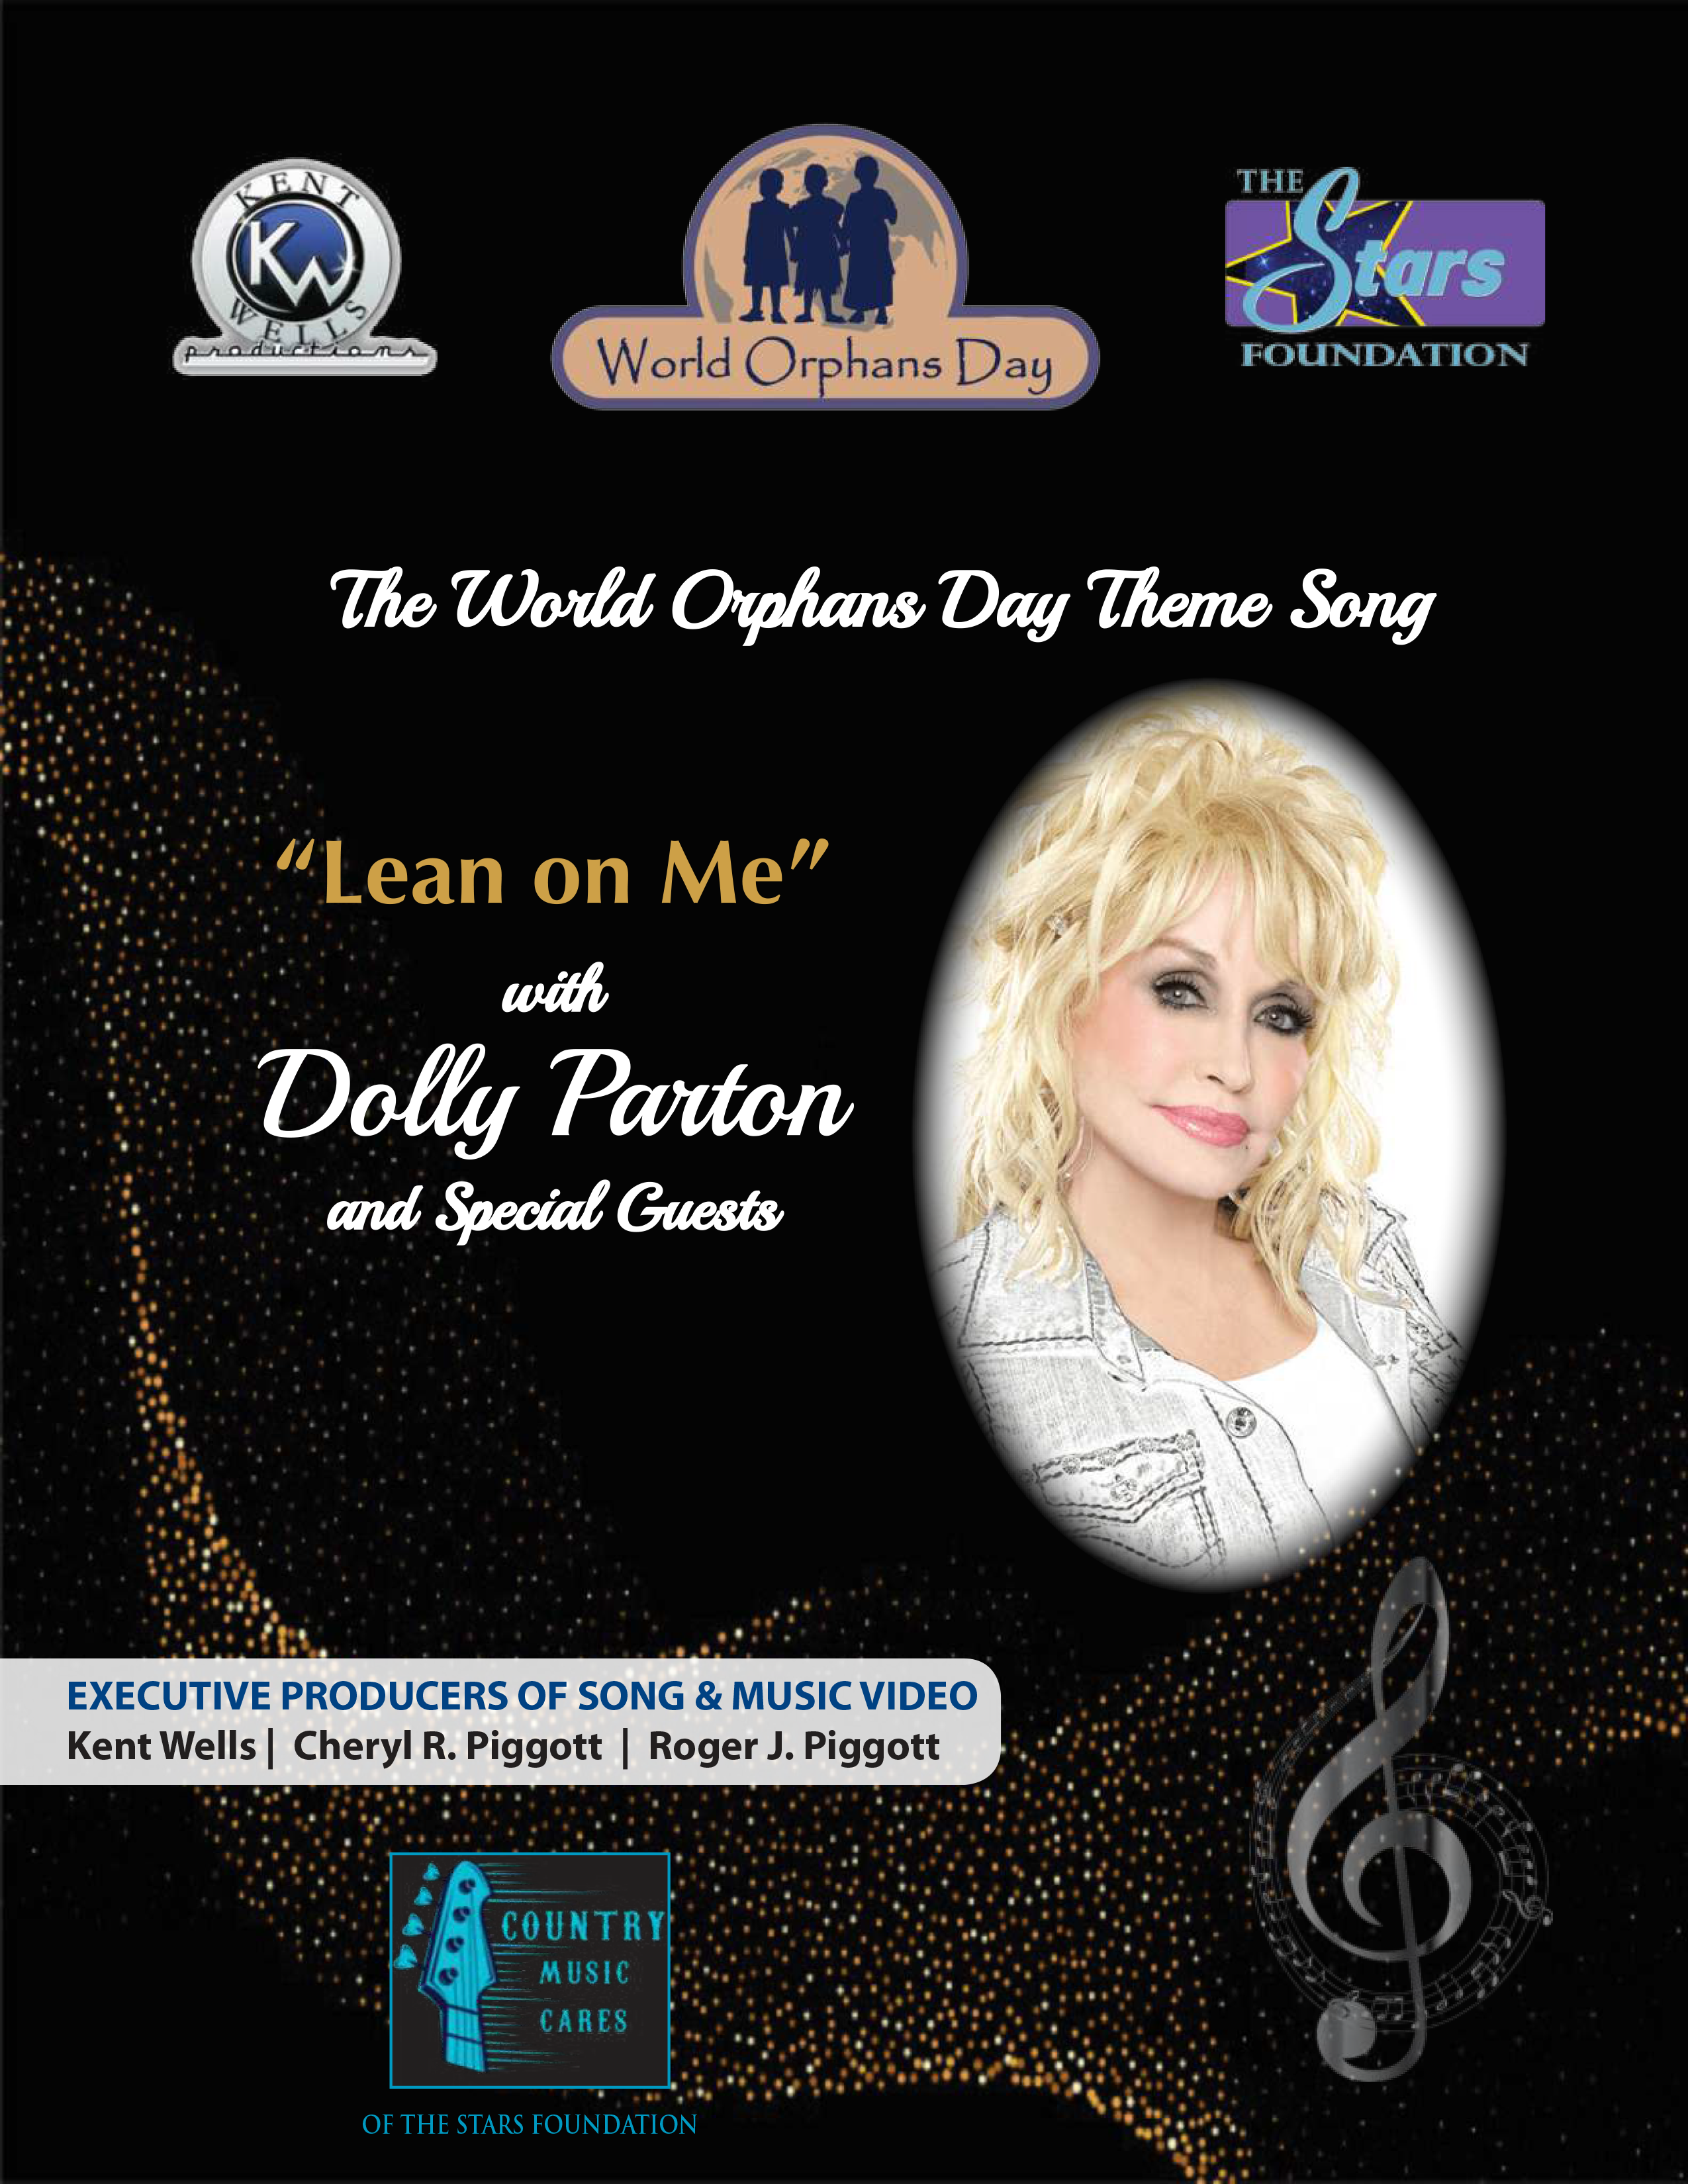 Dolly Parton Theme Song Project Overview